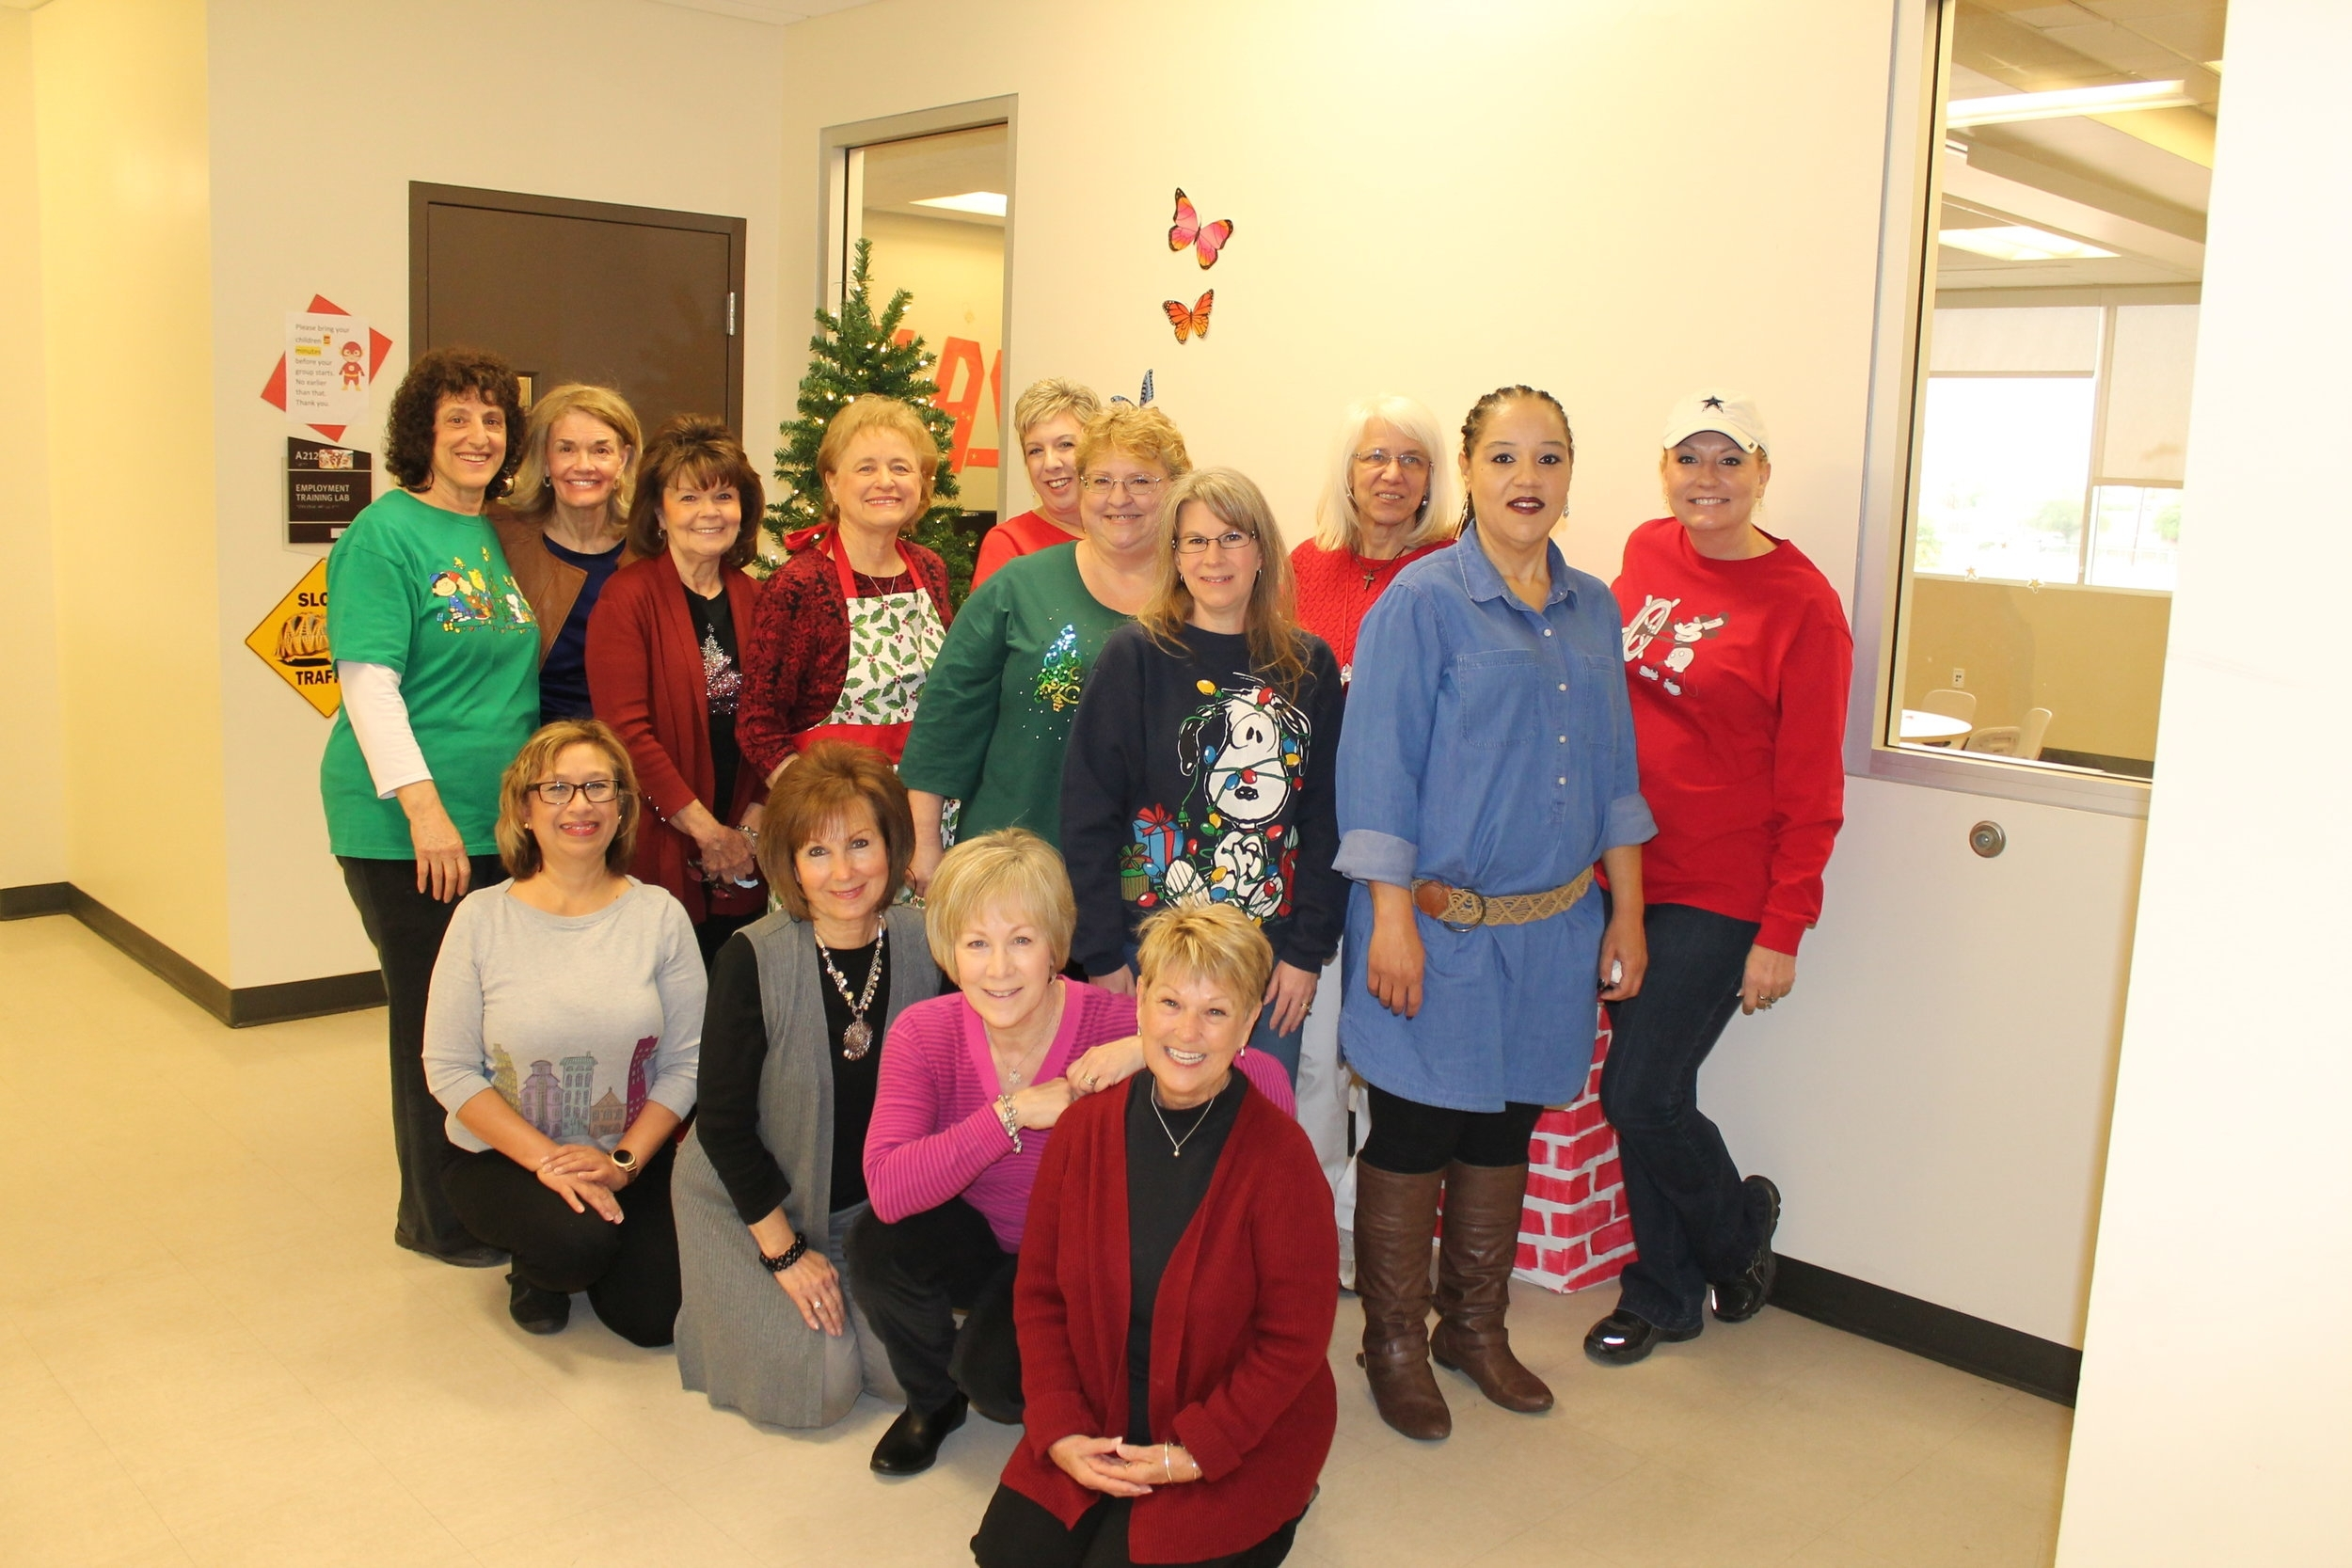 Vicki Voyce, team leader, organized the volunteers for a morning celebrating Jesus birth reading the Christmas story, expressing creativity with beads, frosting and crayons culminating with caramel corn, candy canes and cookies.